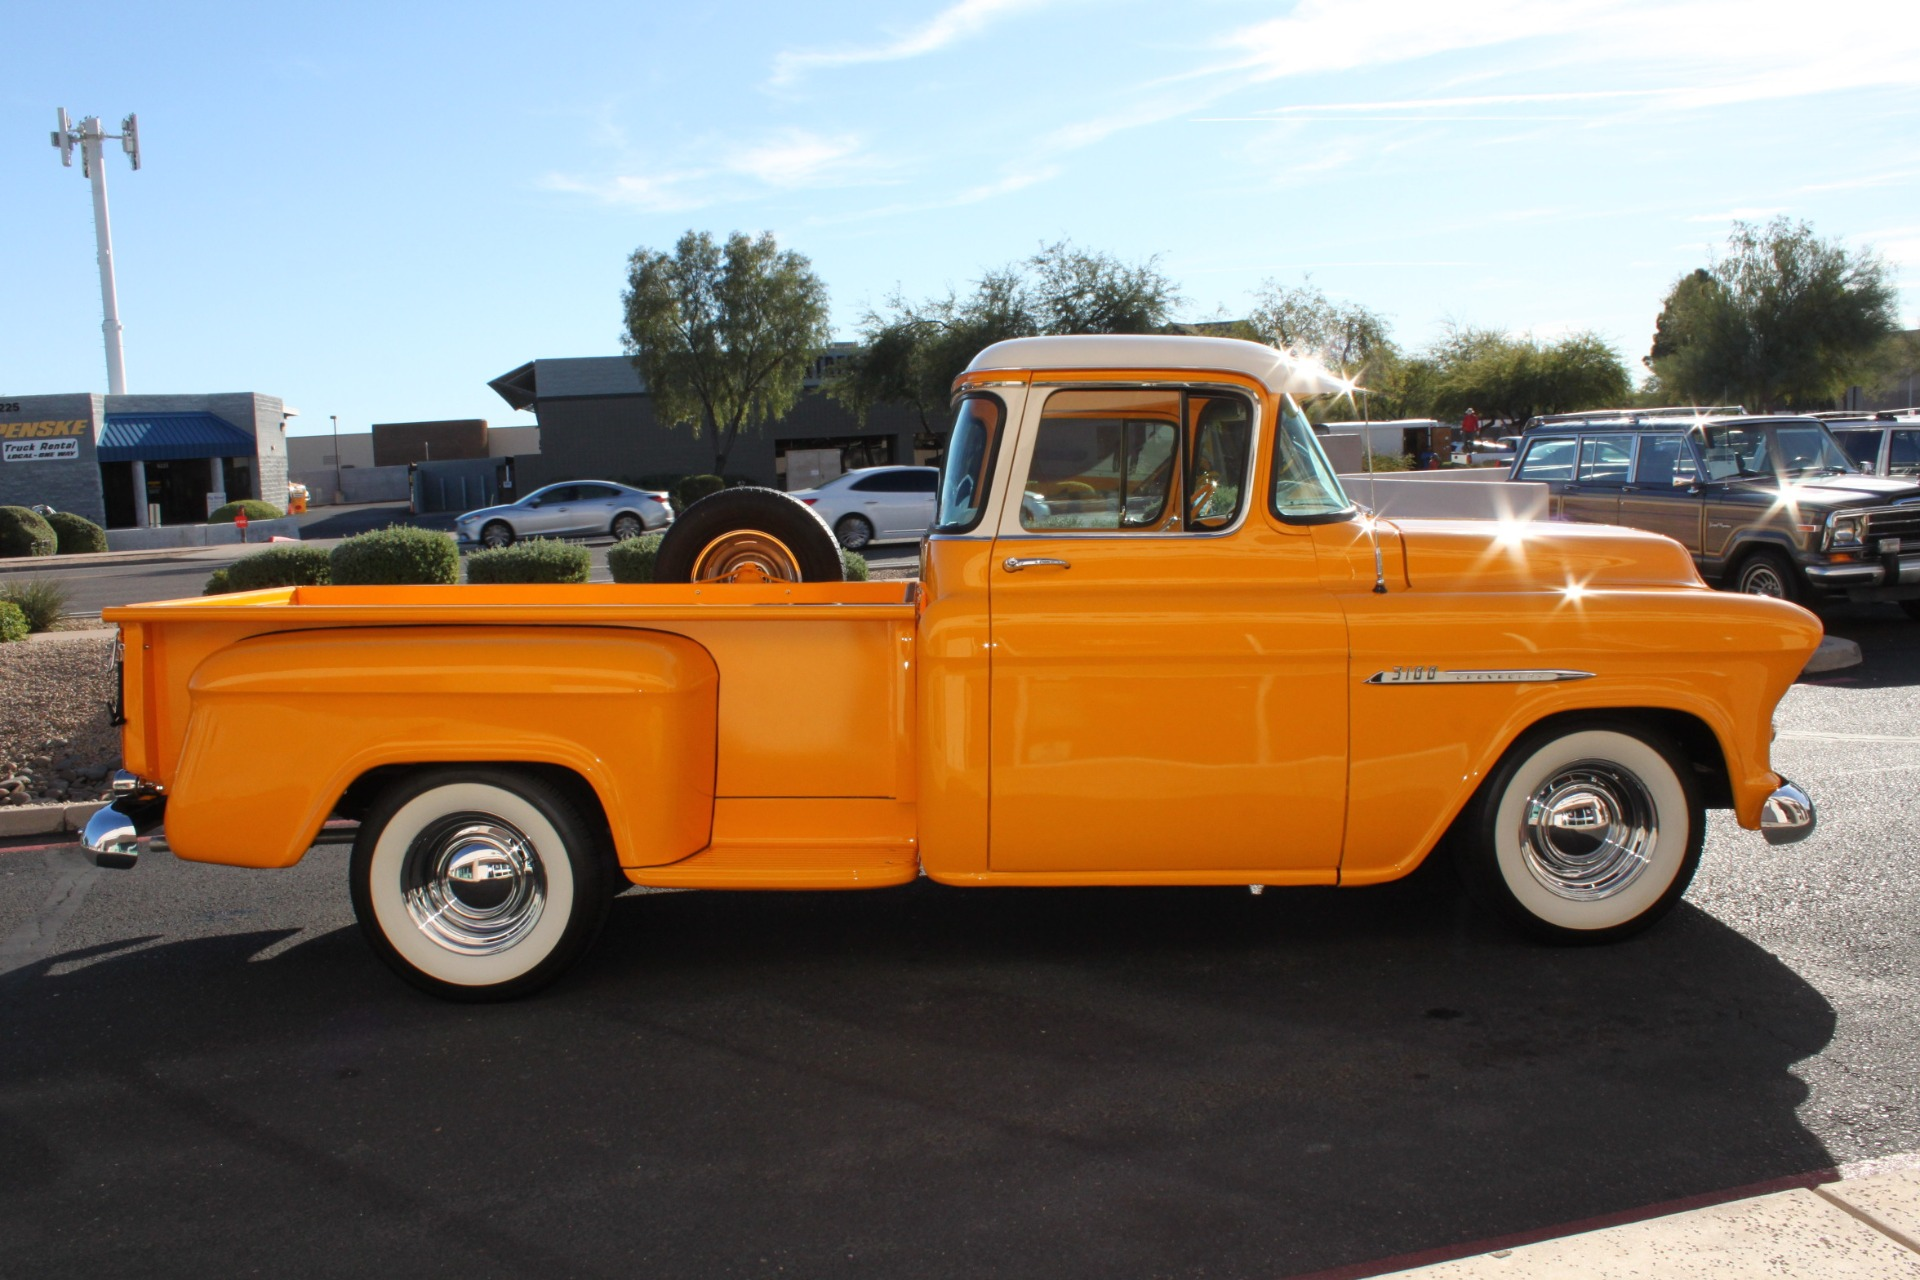 Used-1955-Chevrolet-3100-Pickup-Truck-Mercedes-Benz